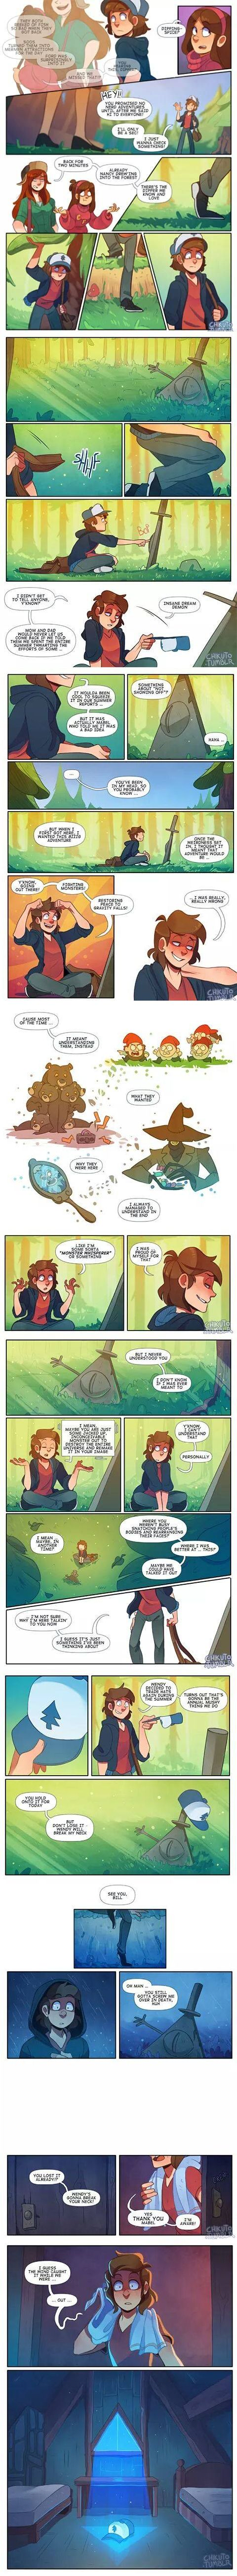 Gravity Falls by Chikuto.tumblr<<<<<FINALLY ITS ON PINTEREST